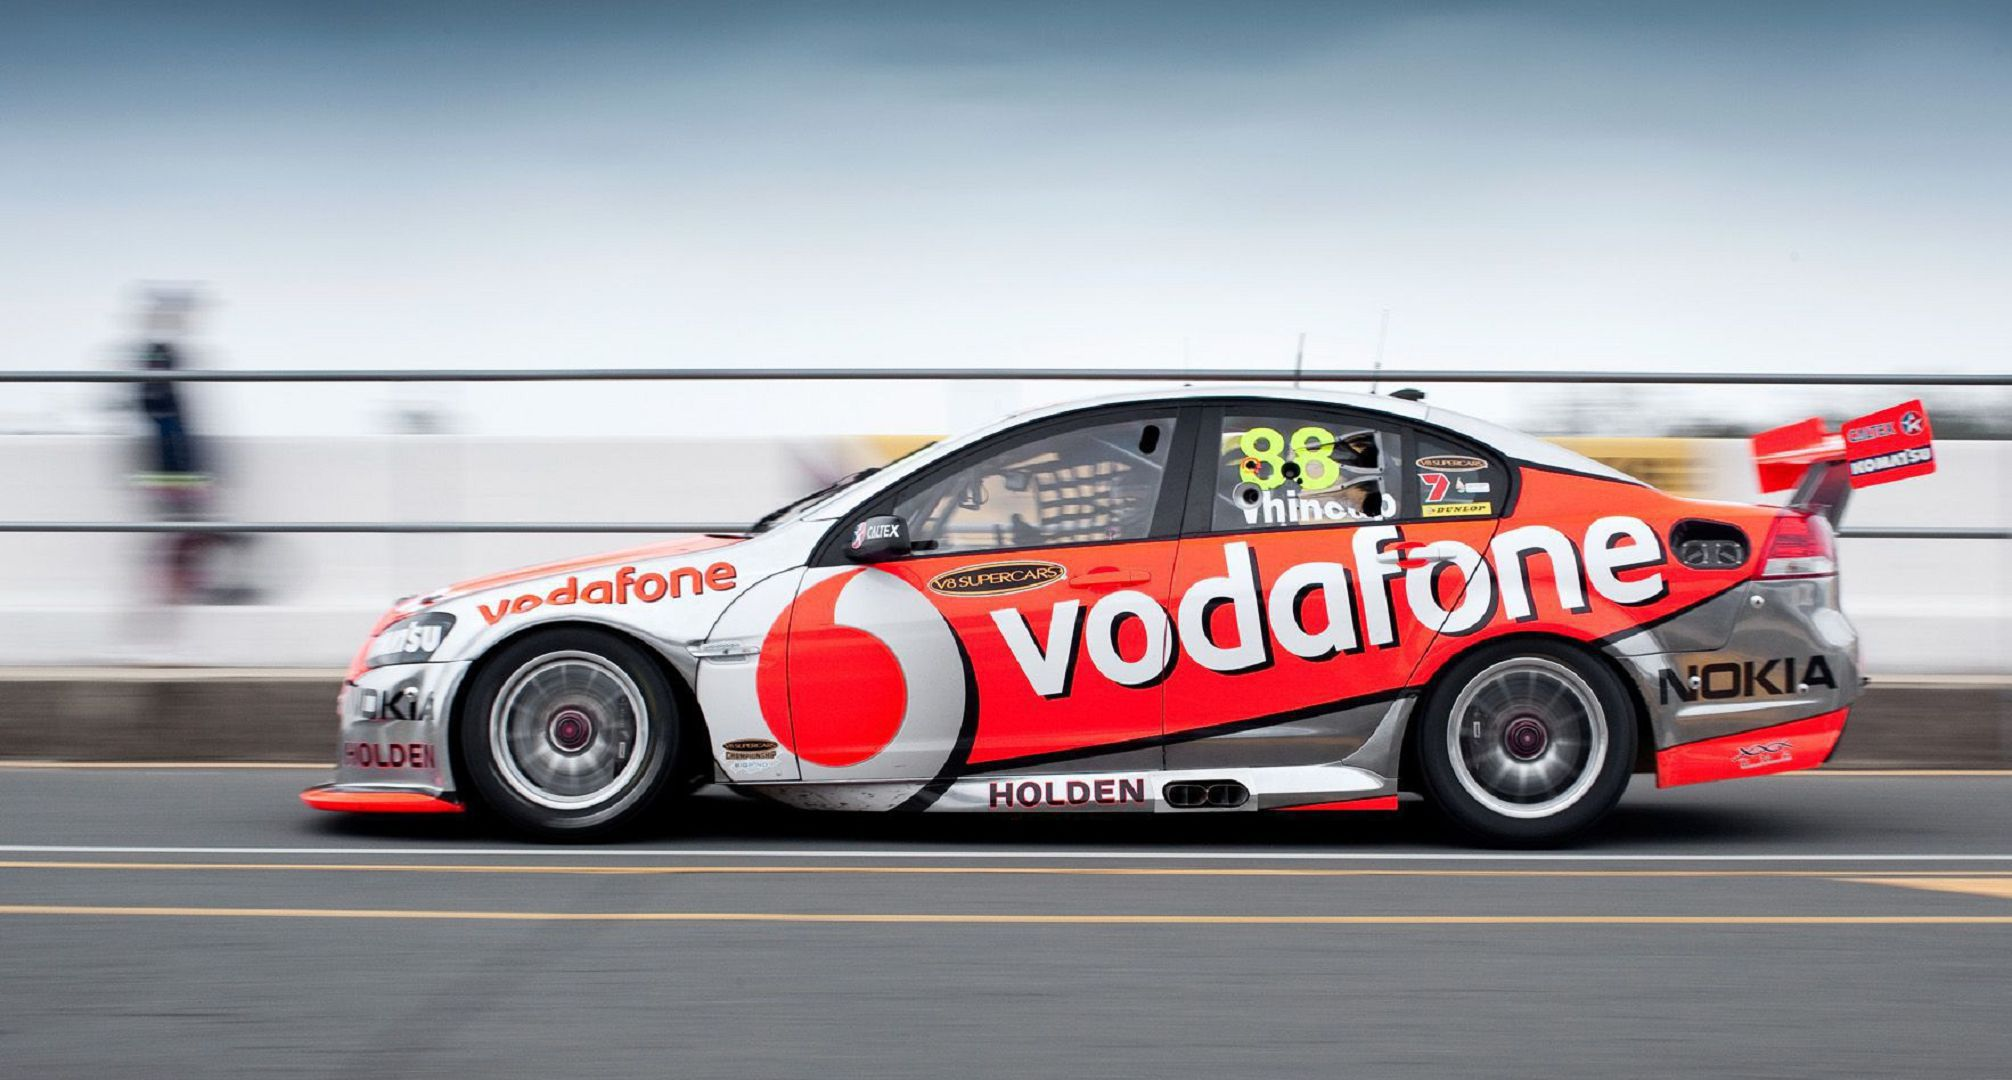 V8 Supercars HD Wallpapers Images Backgrounds 2012x1080